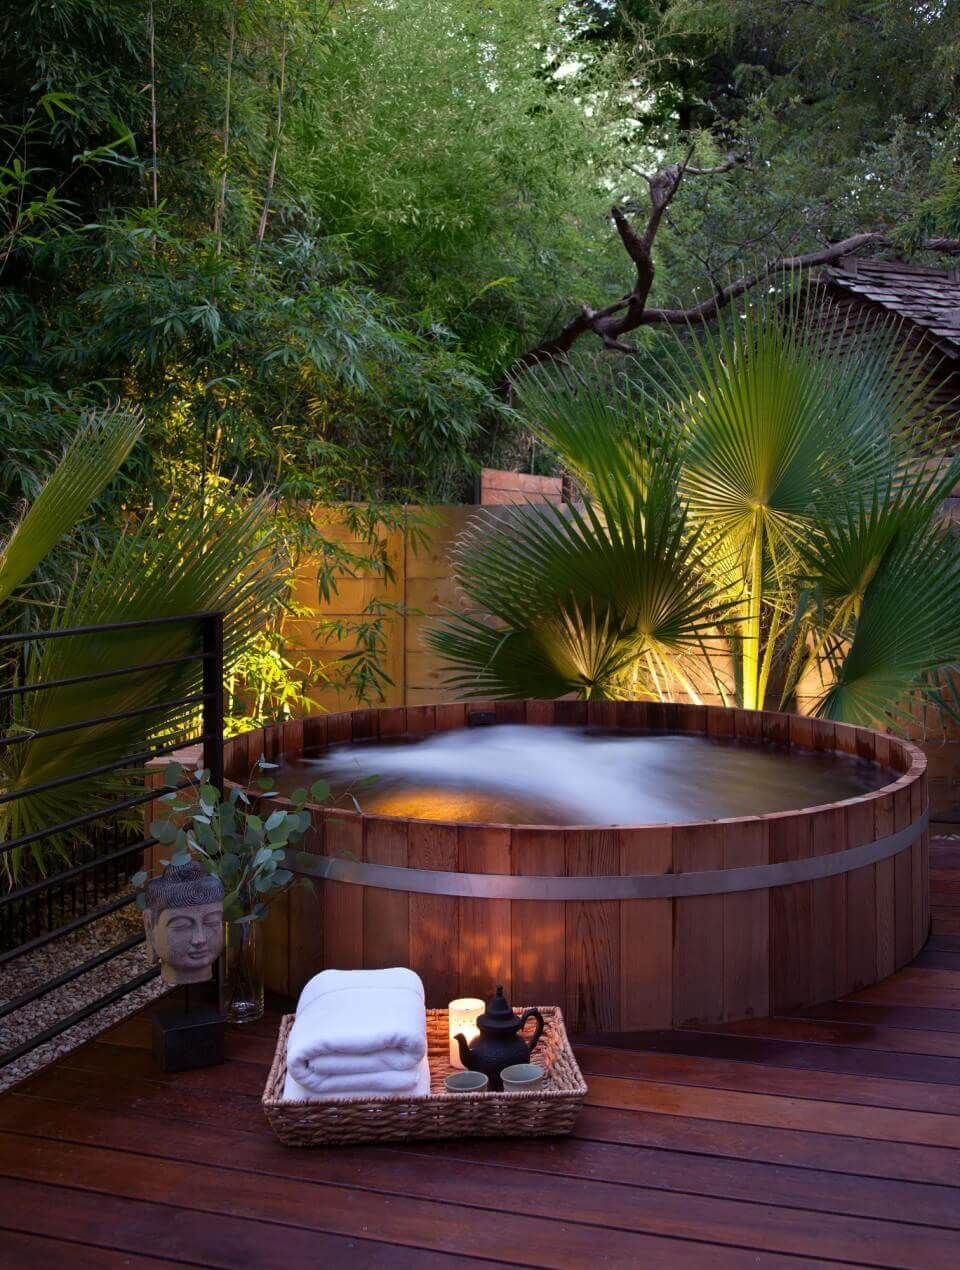 30 Outdoor Spas And Hot Tubs You Deserve Hot Tub Outdoor Jacuzzi Outdoor Outdoor Spa